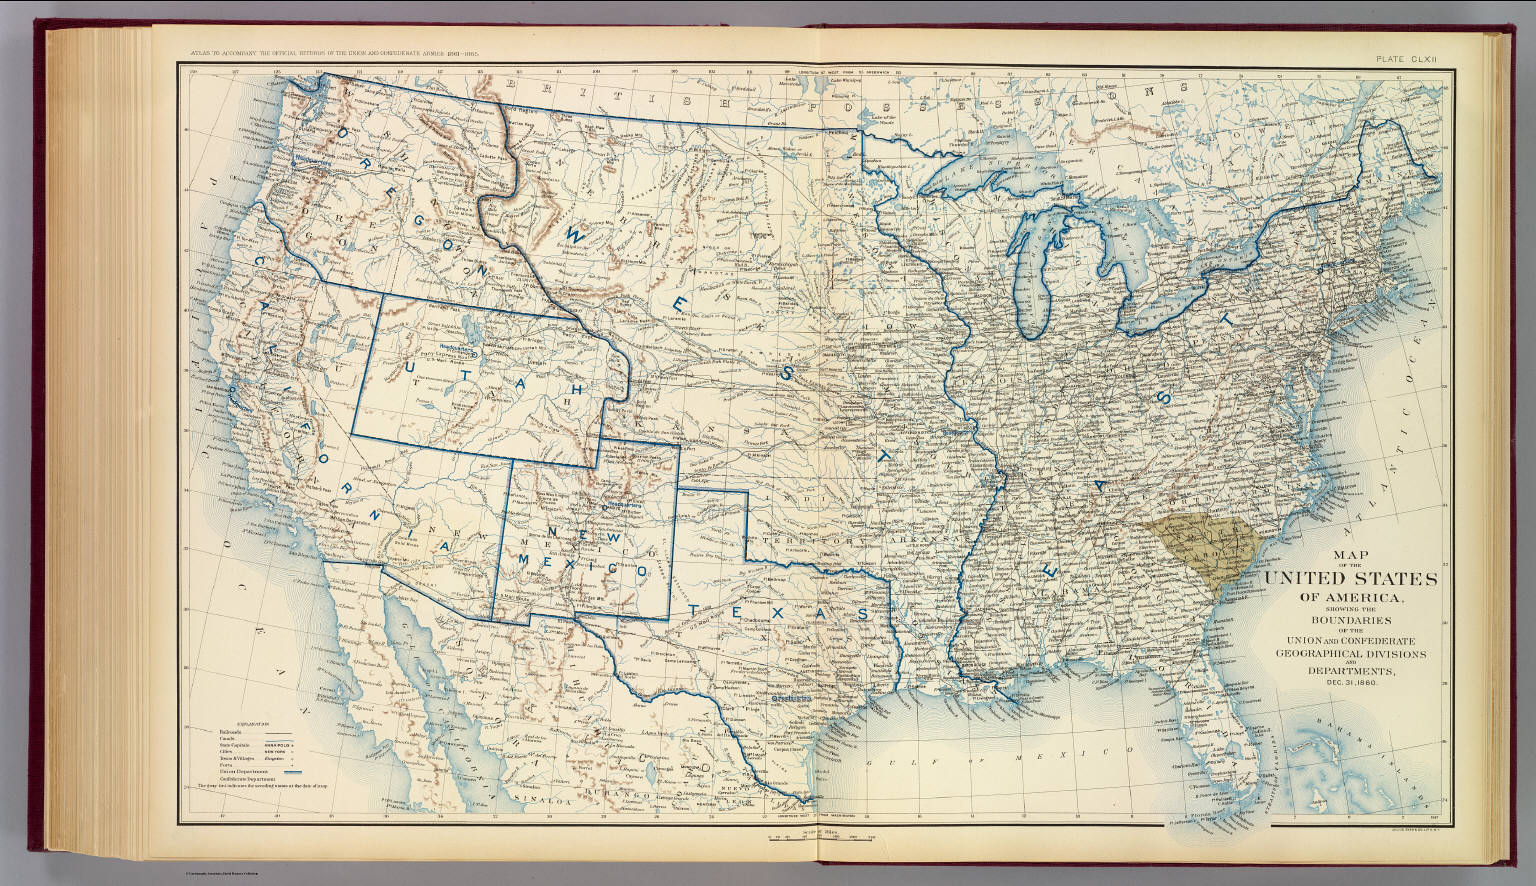 USA Dec David Rumsey Historical Map Collection - 1860 us map